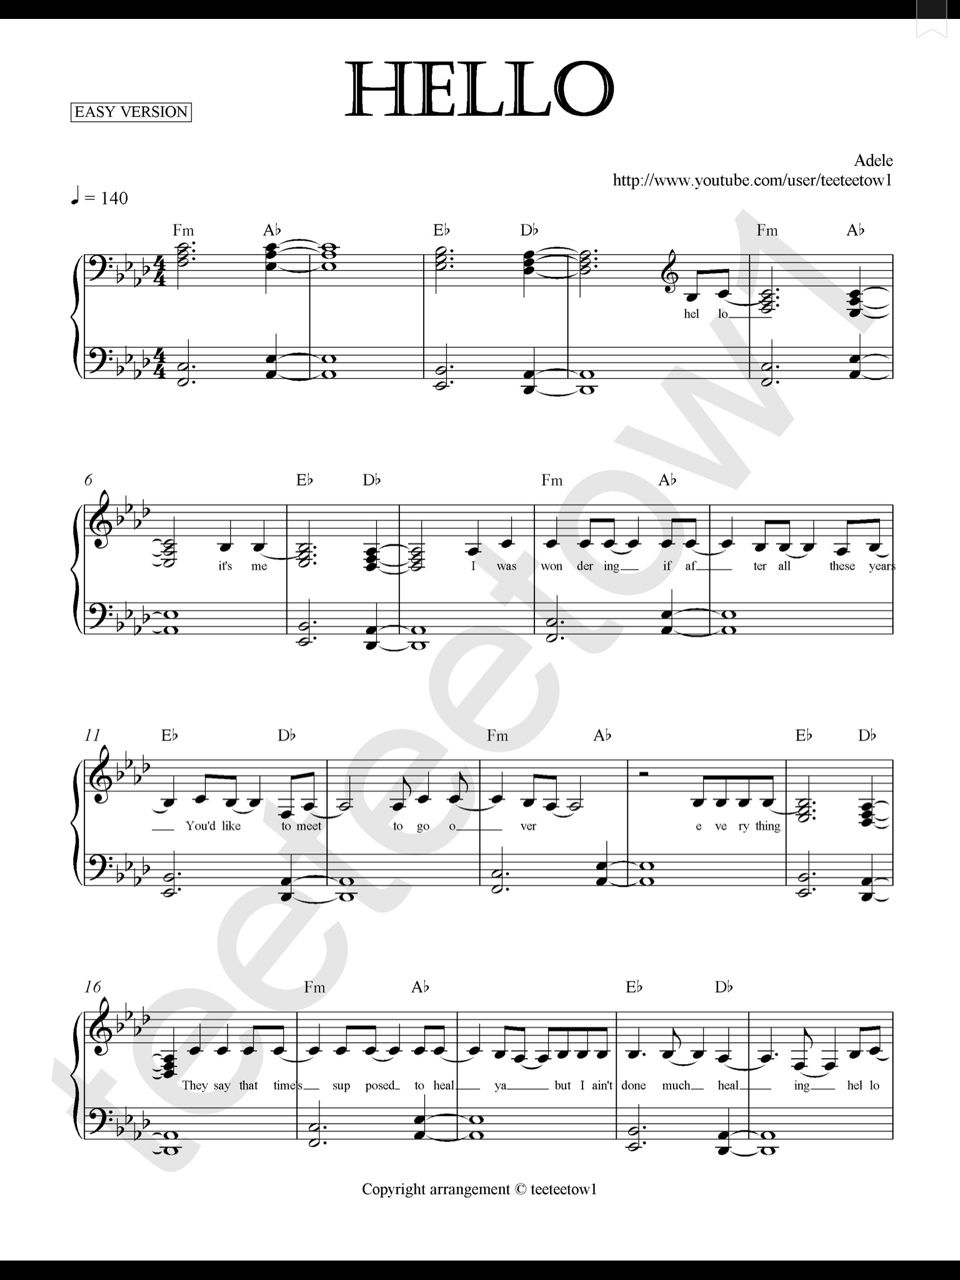 Piano Sheet Music u2014 Hello - Adele (Piano Sheet) : For future reference... : Pinterest : Adele ...